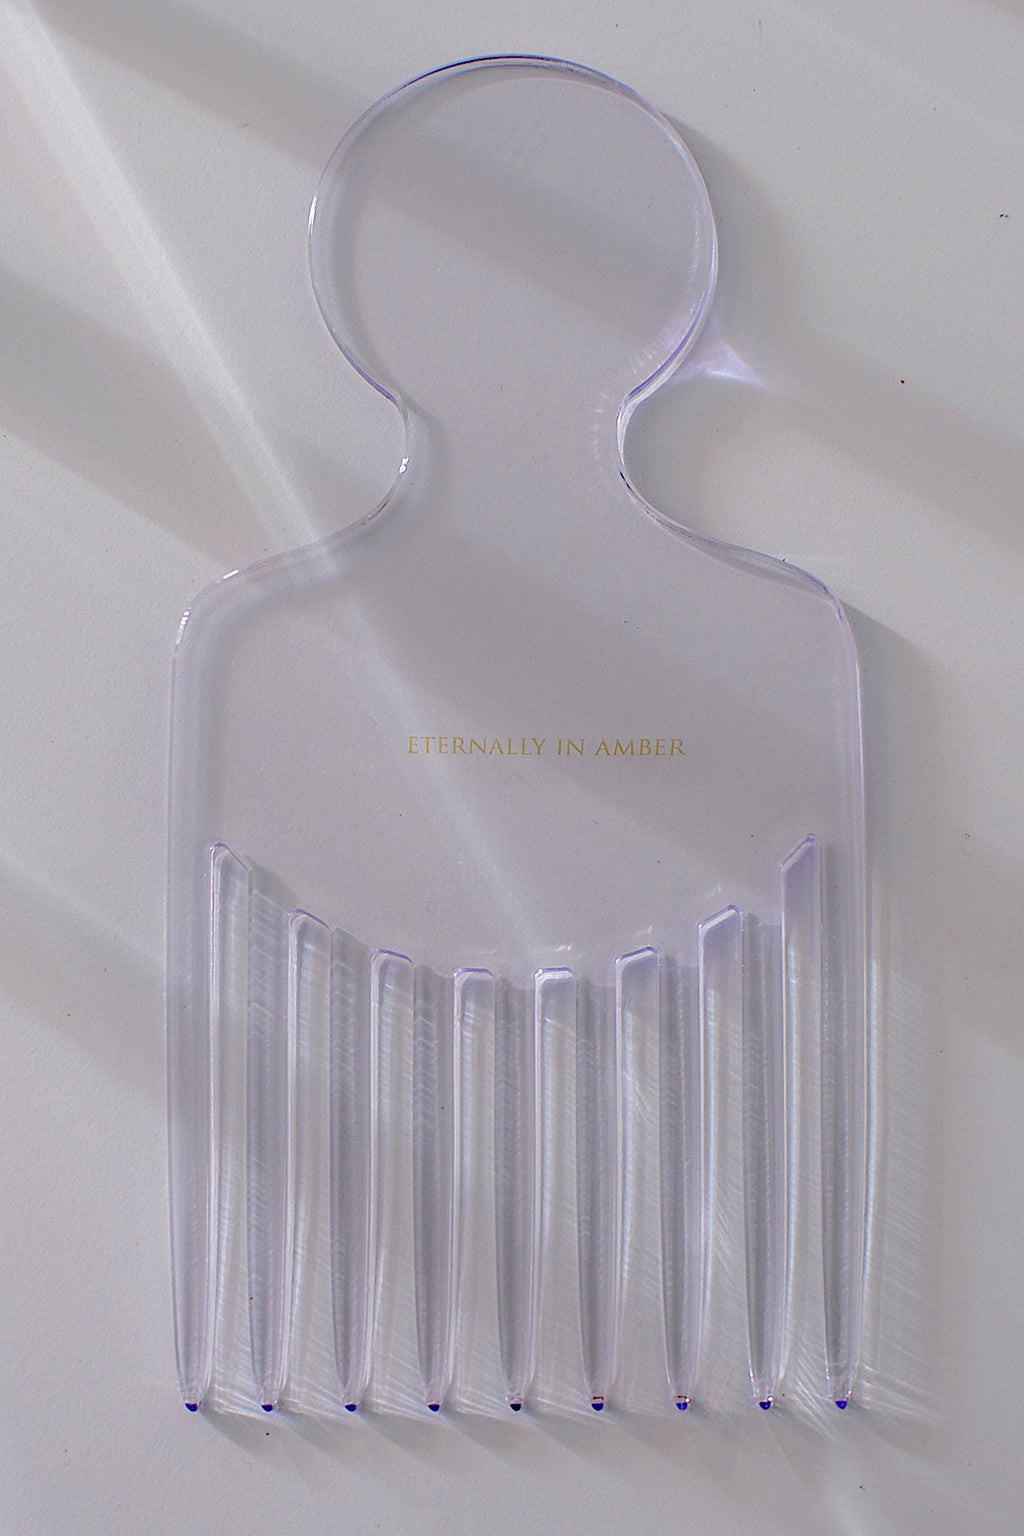 Casa Cuadra Objects Eternally In Amber Luxe Hair Pick - Clear Acrylic